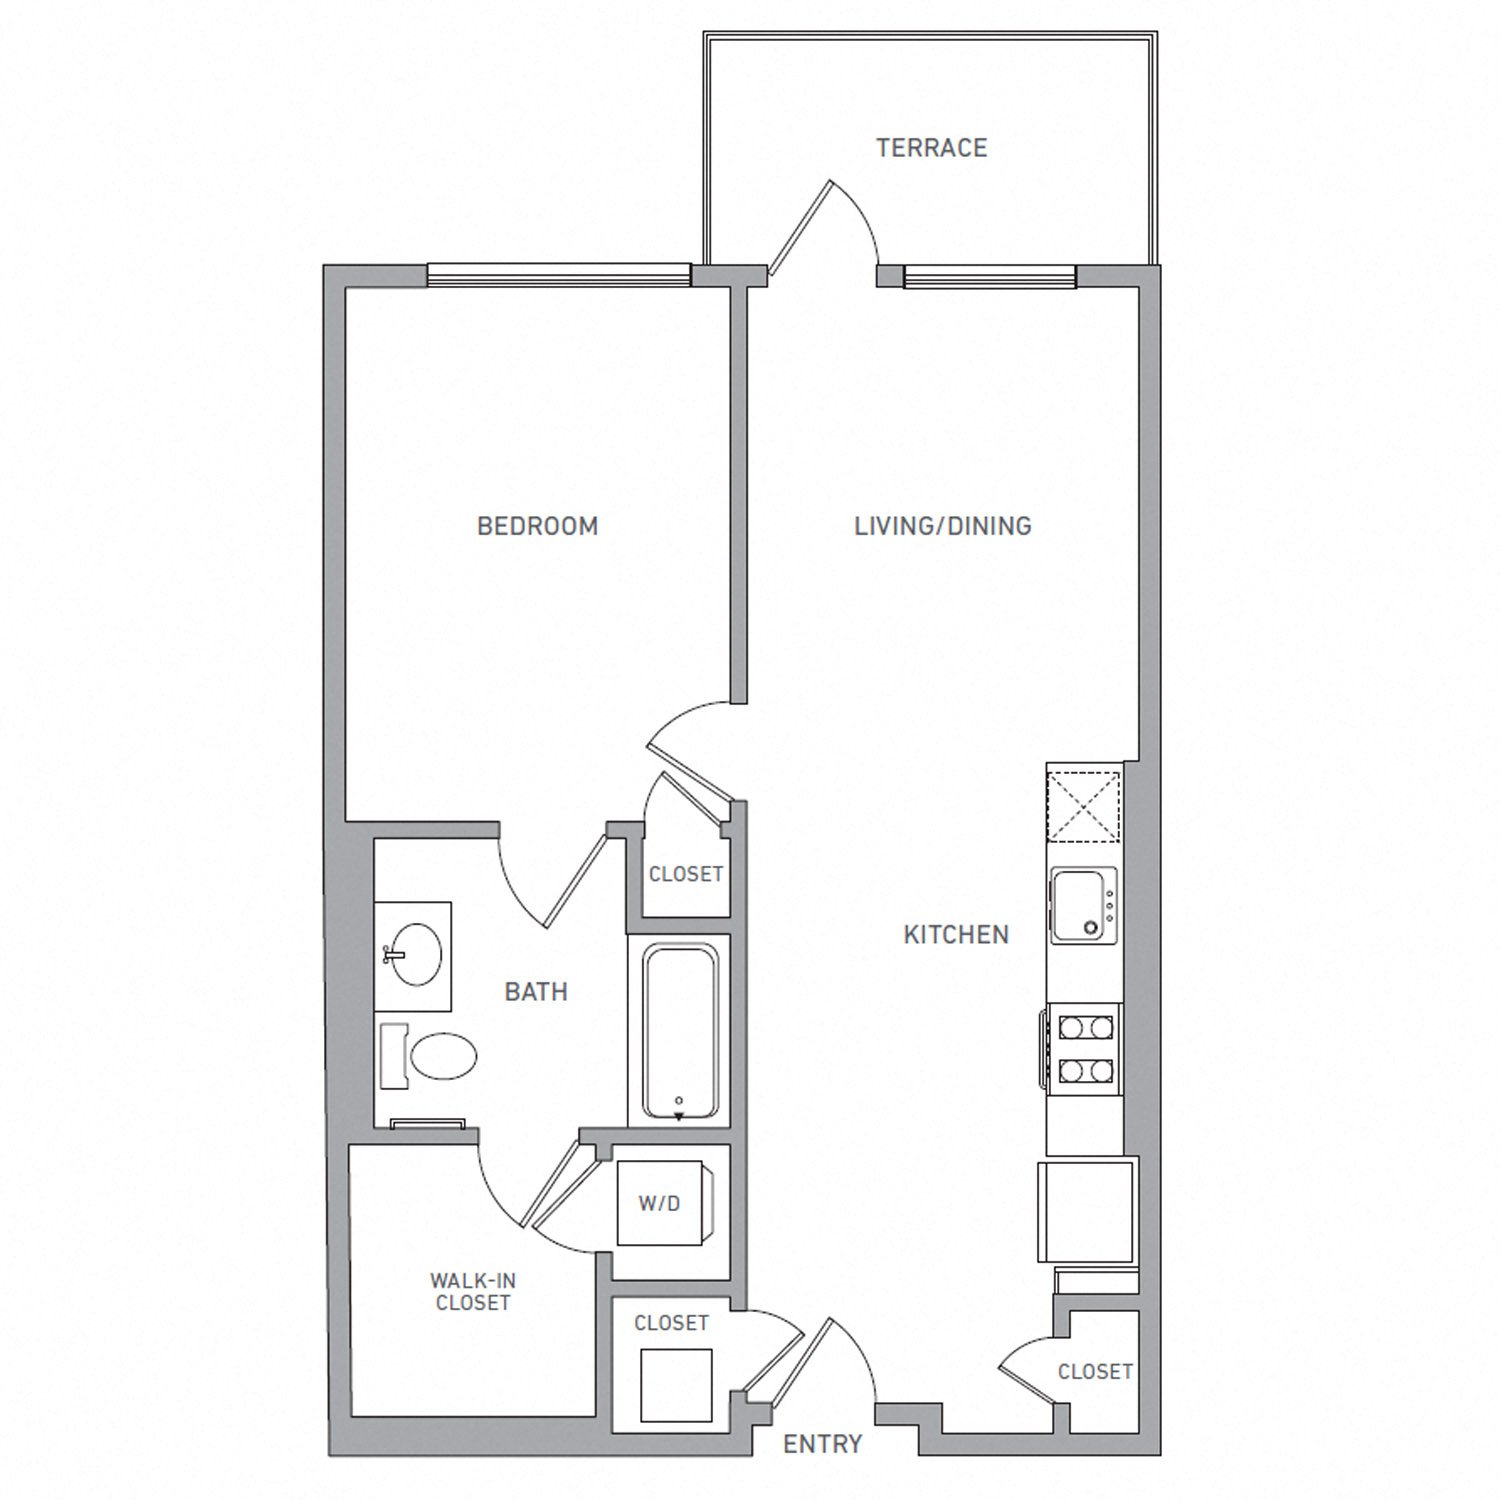 A Four floor plan diagram. One bedroom, one bathroom, an open kitchen and living area, a terrace, and a washer dryer.